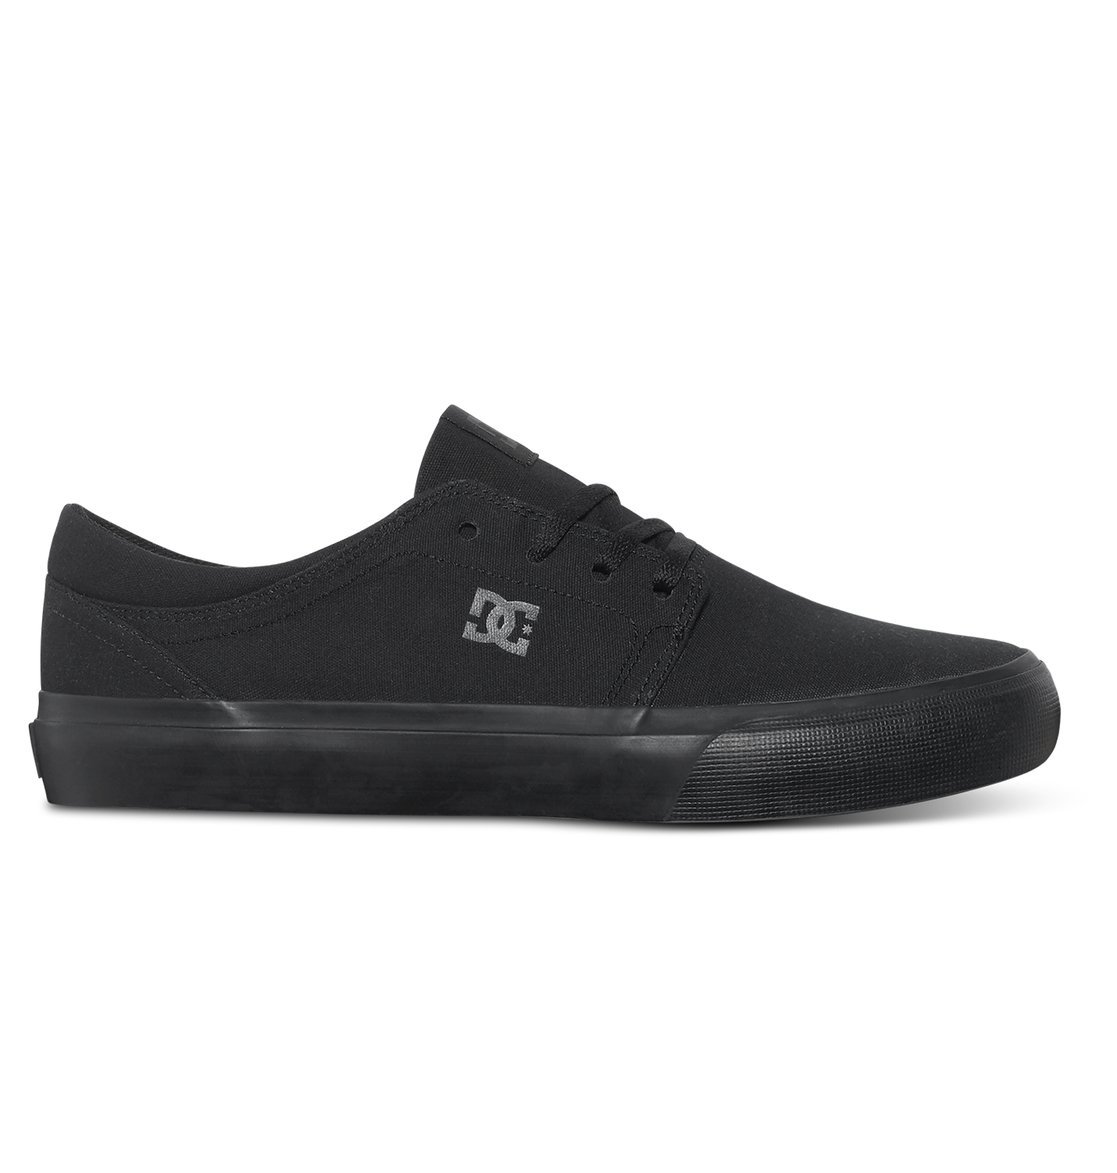 DC Women's Trase TX Skate Shoe Black, 4 D D US